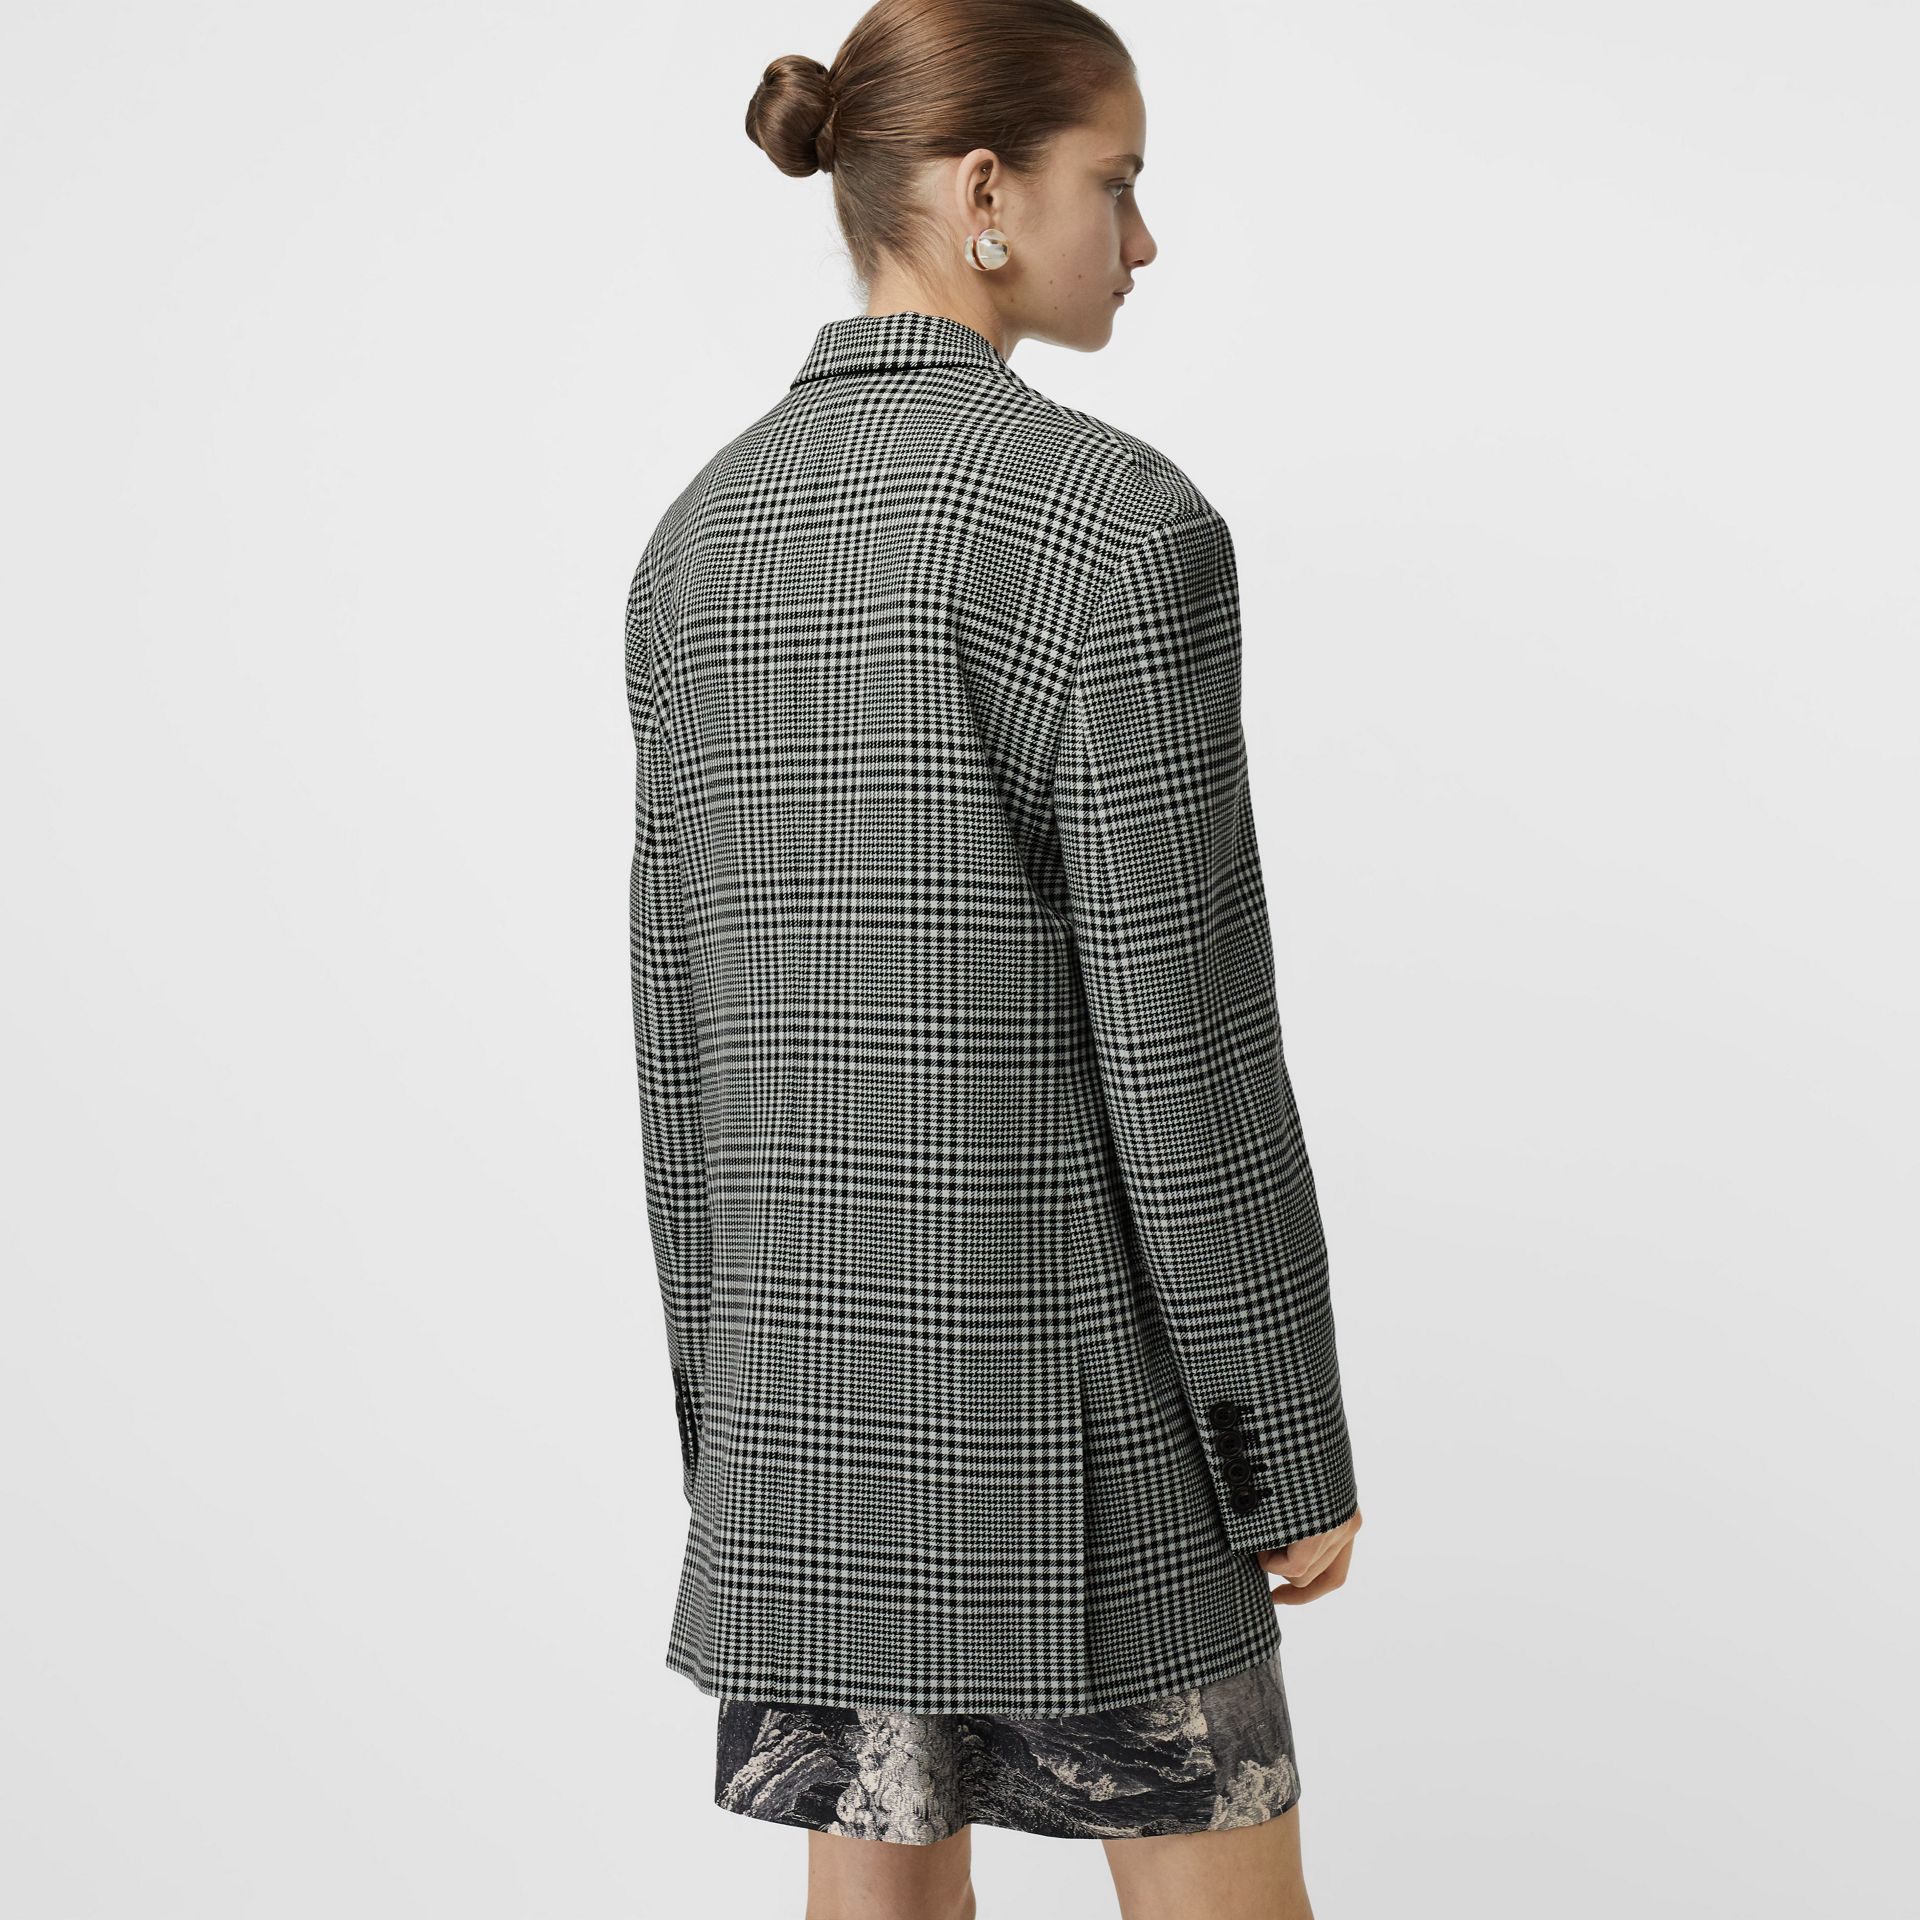 Prince of Wales Check Wool Oversized Jacket in Mist Green - Women | Burberry United States - gallery image 2